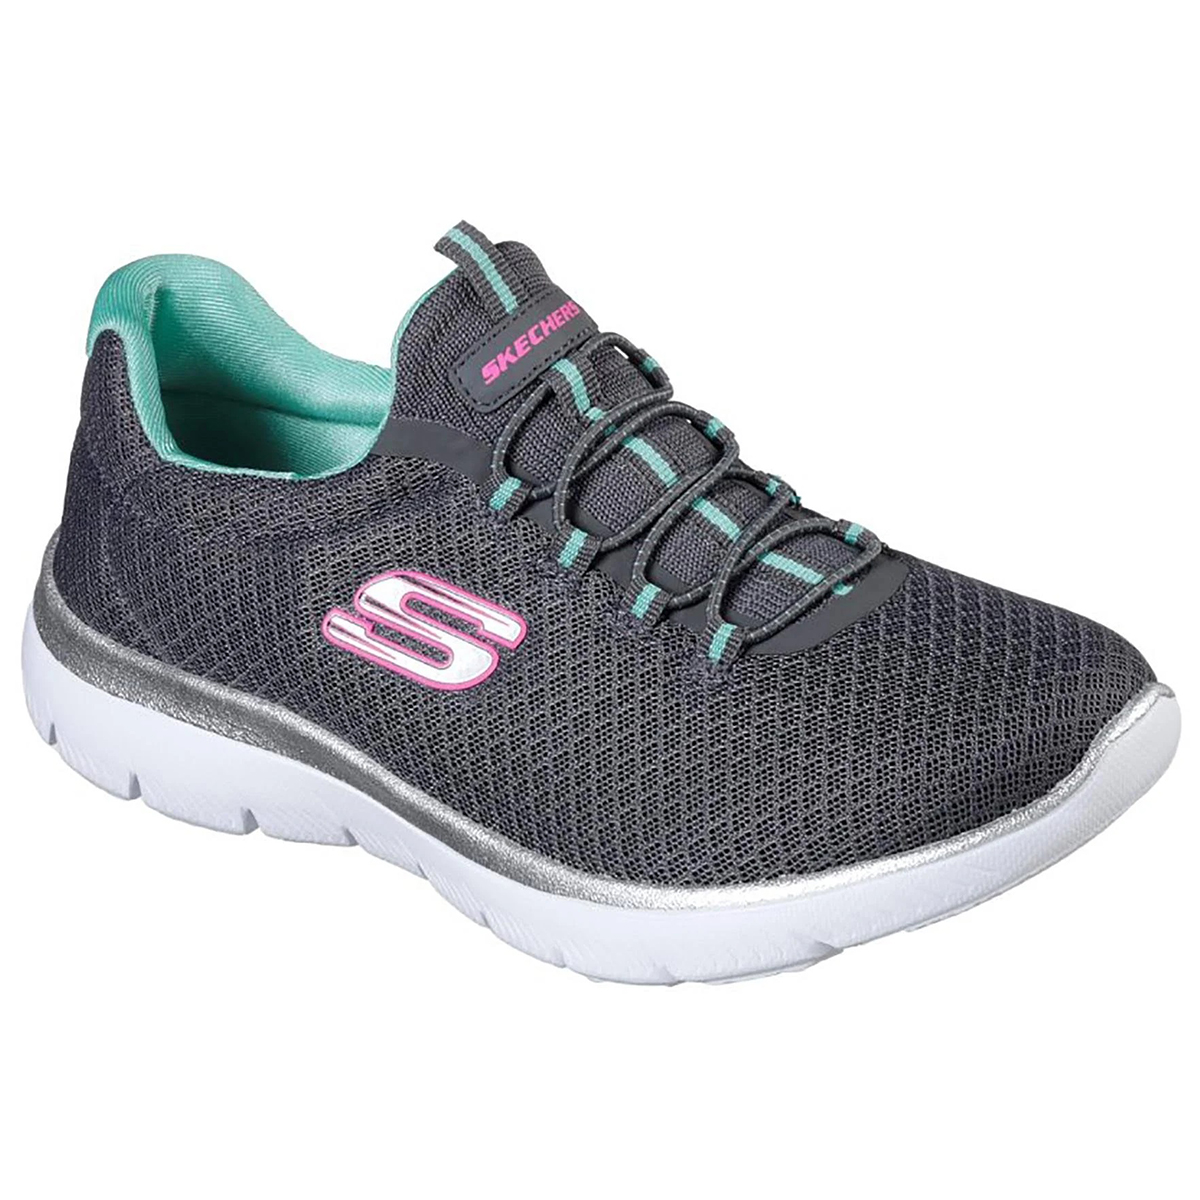 Skechers Women's Summits Sneakers, Wide - Black, 11